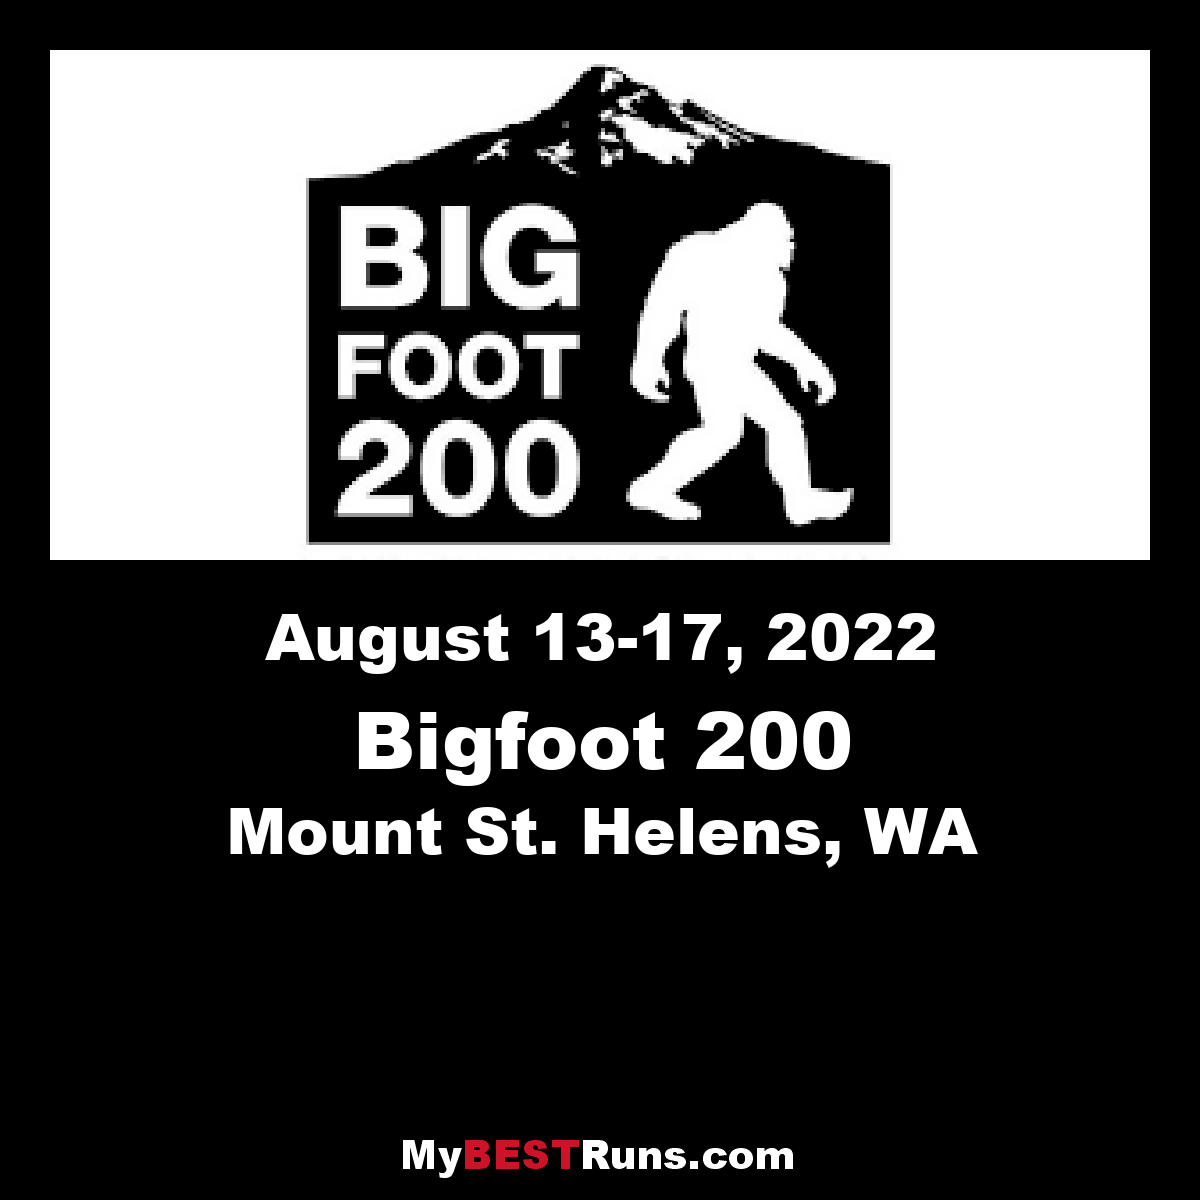 Bigfoot 200